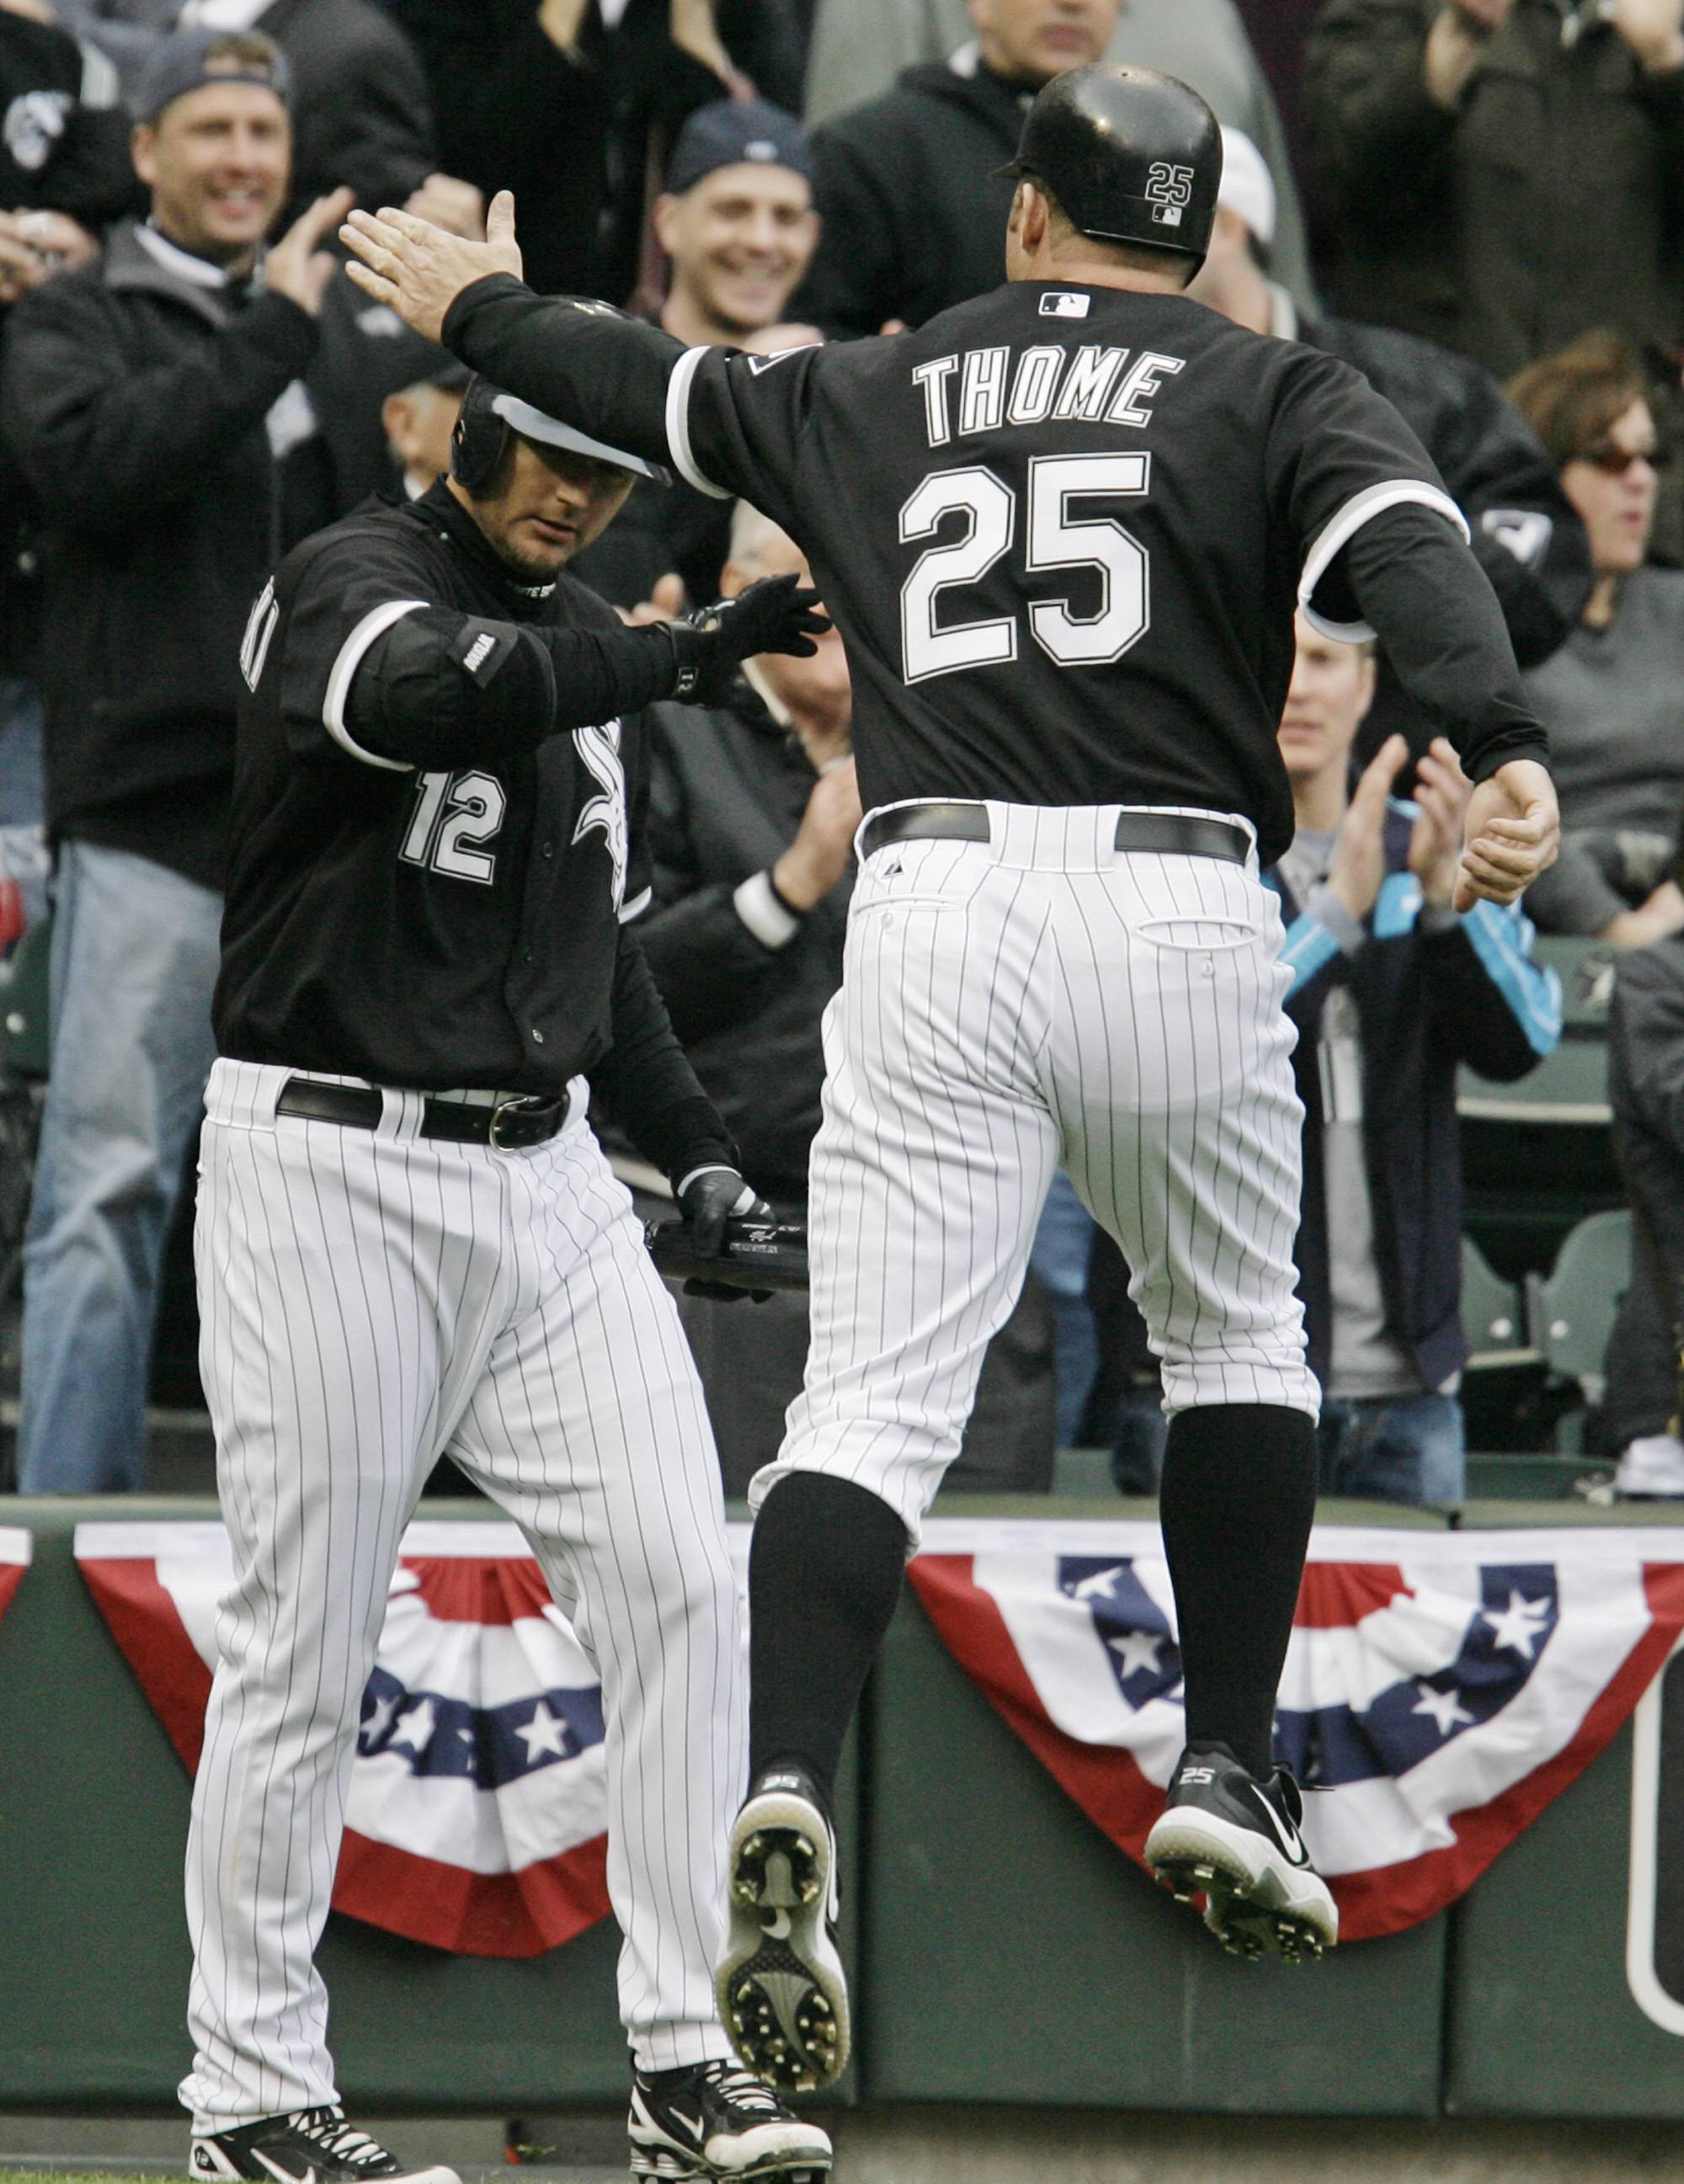 Chicago White Soxs' Jim Thome leaps in the air as he celebrates with A.J. Pierzynski after scoring on an RBI single by Jermaine Dye during the seventh inning of an MLB baseball game against the Minnesota Twins' Monday, April 7, 2008 in Chicago. (AP Photo/M. Spencer Green)